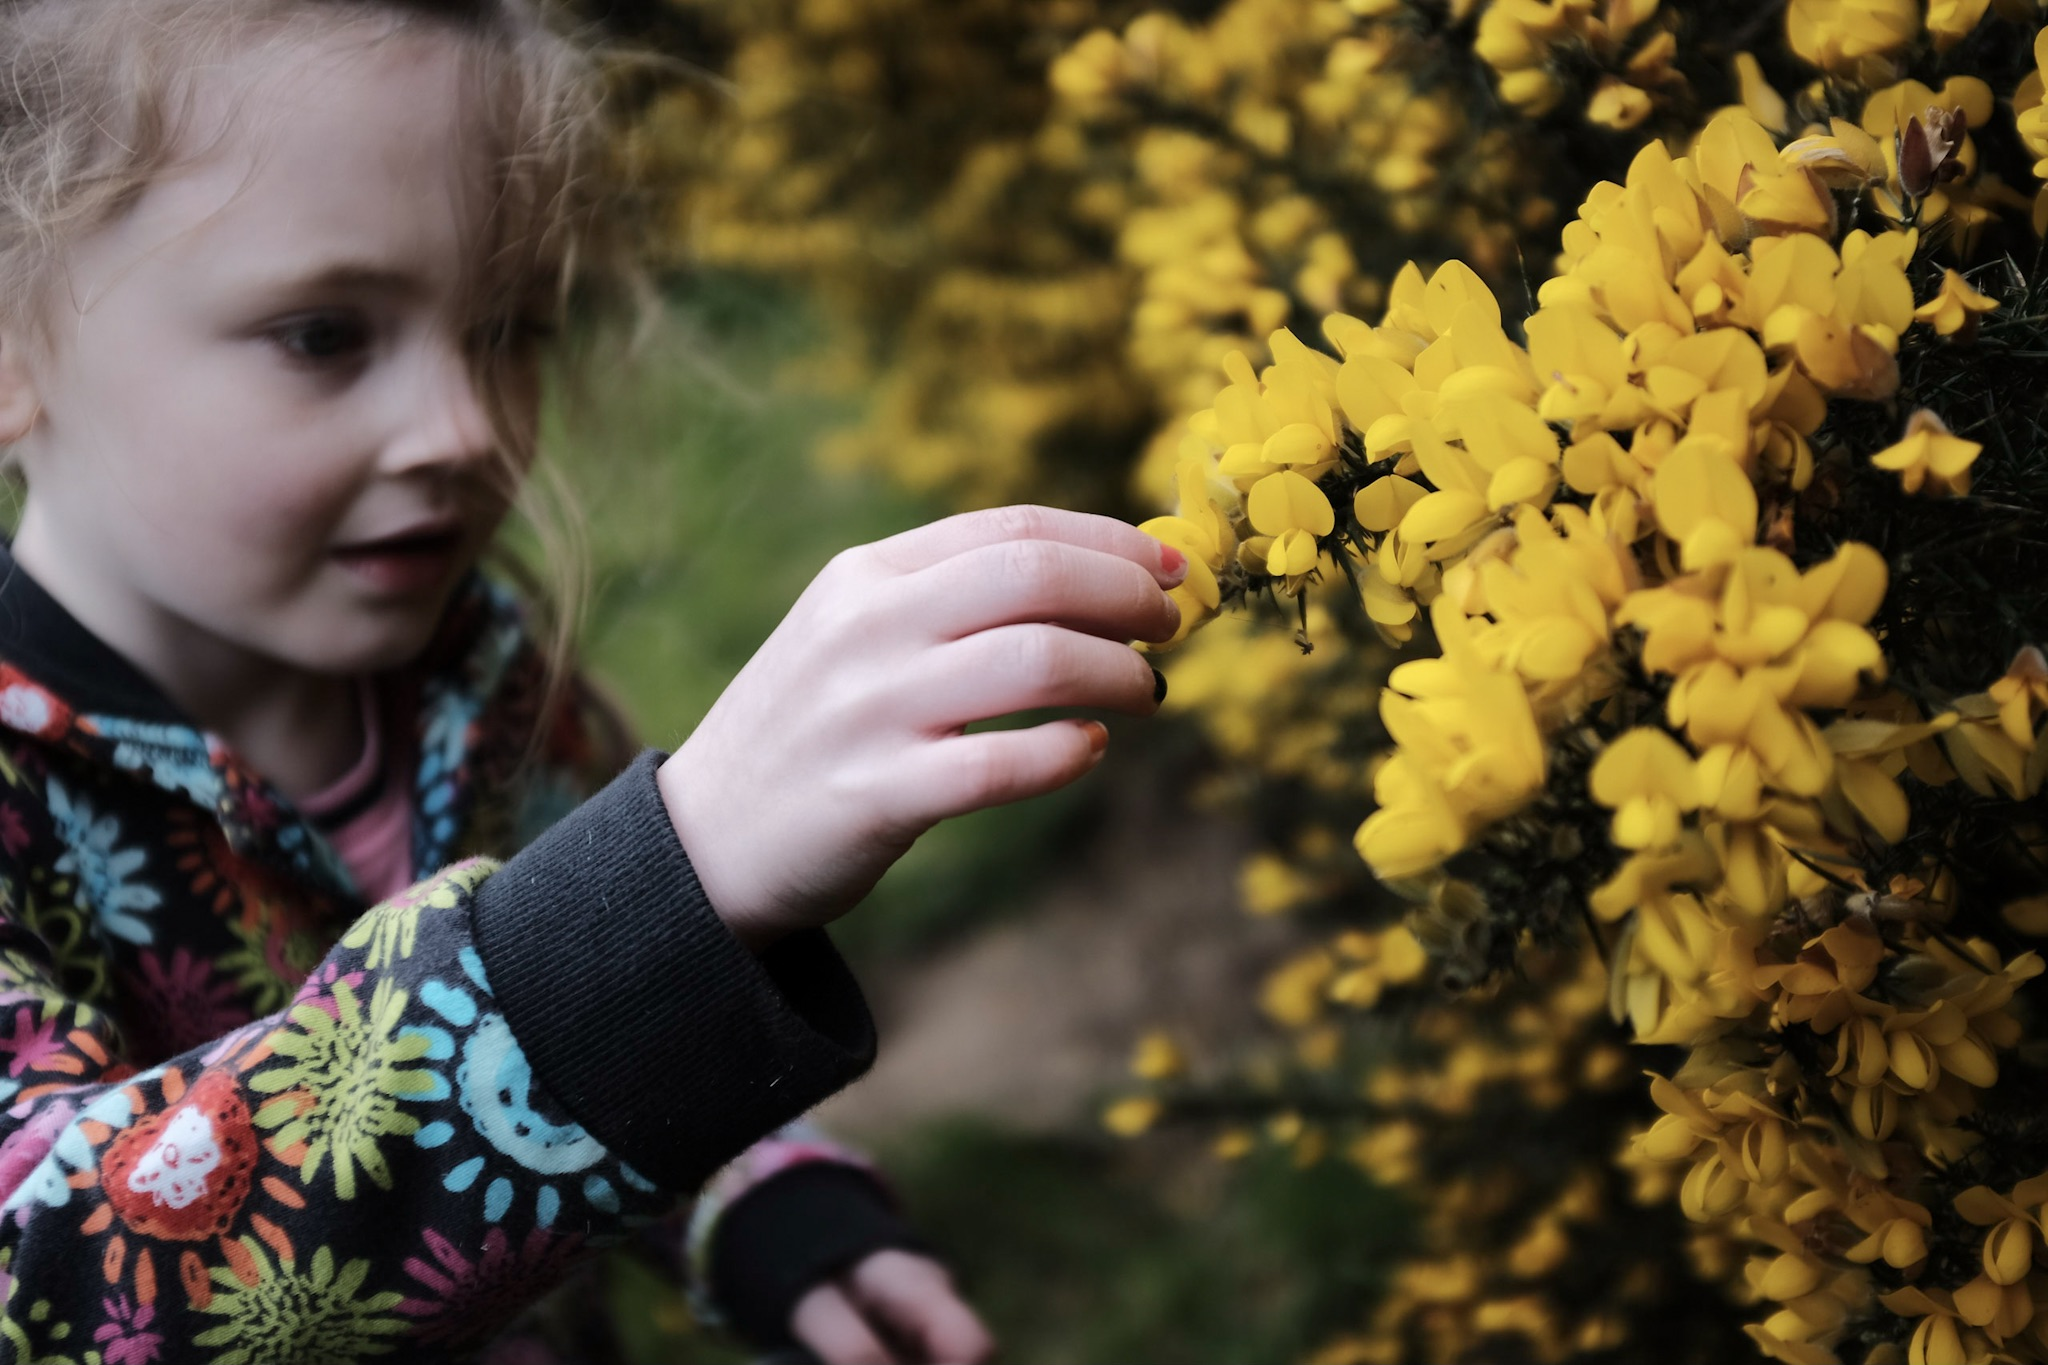 Picking the flowers.